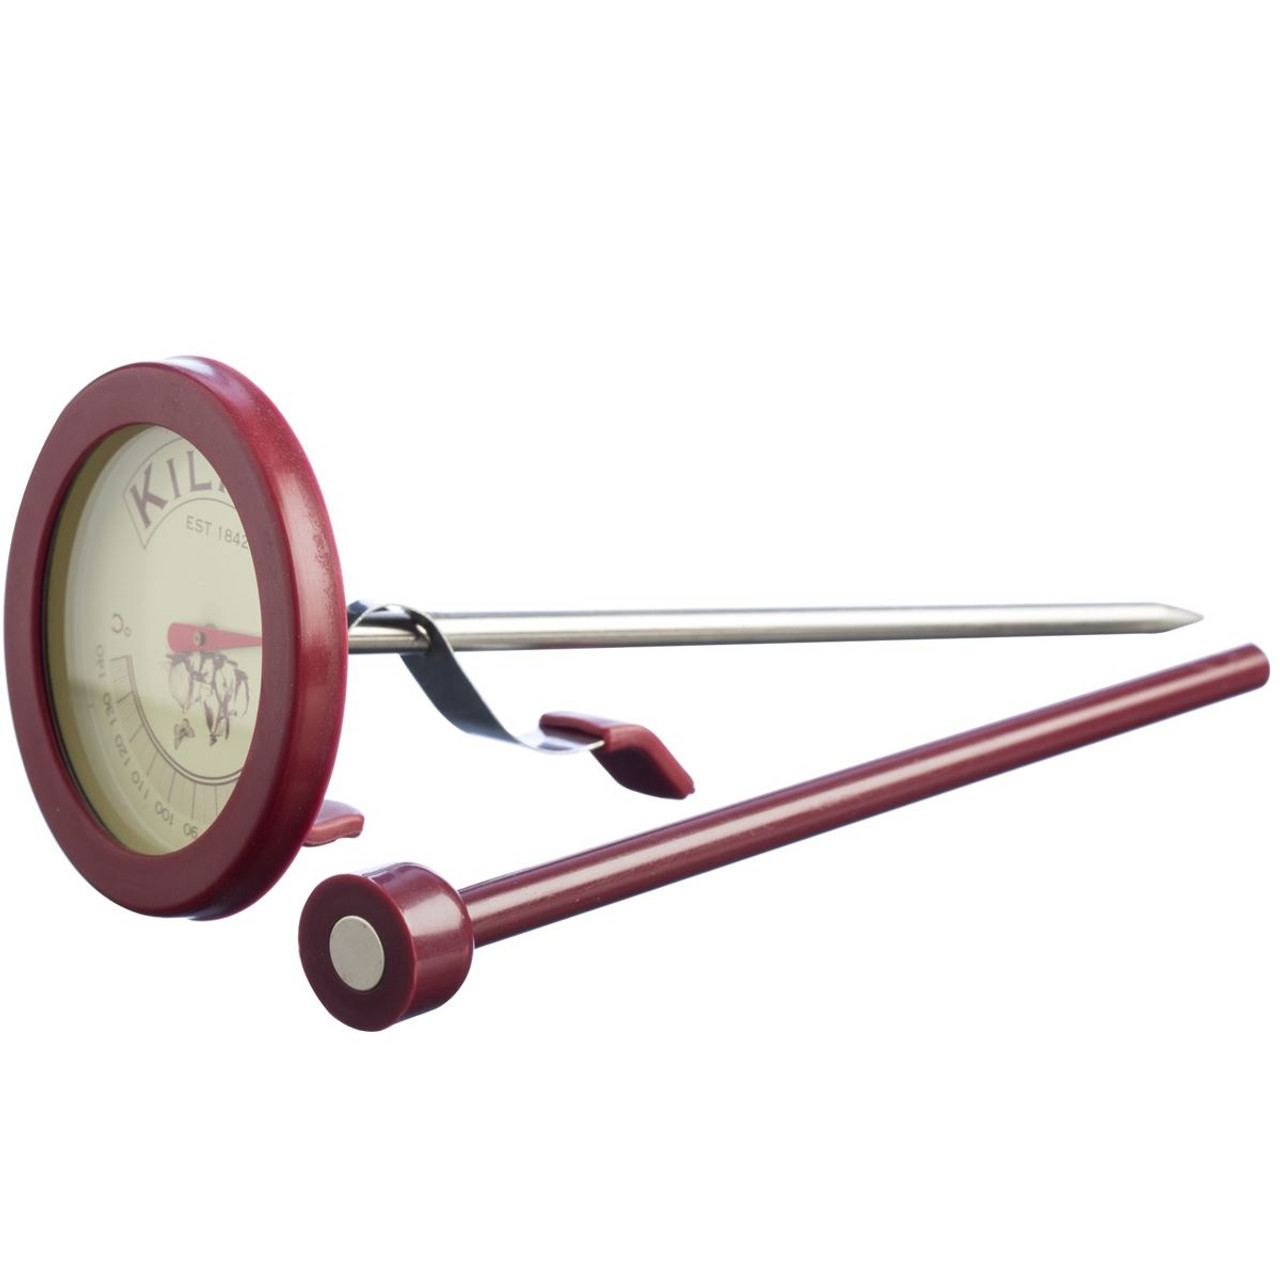 Kilner Thermometer And Lid Lifter